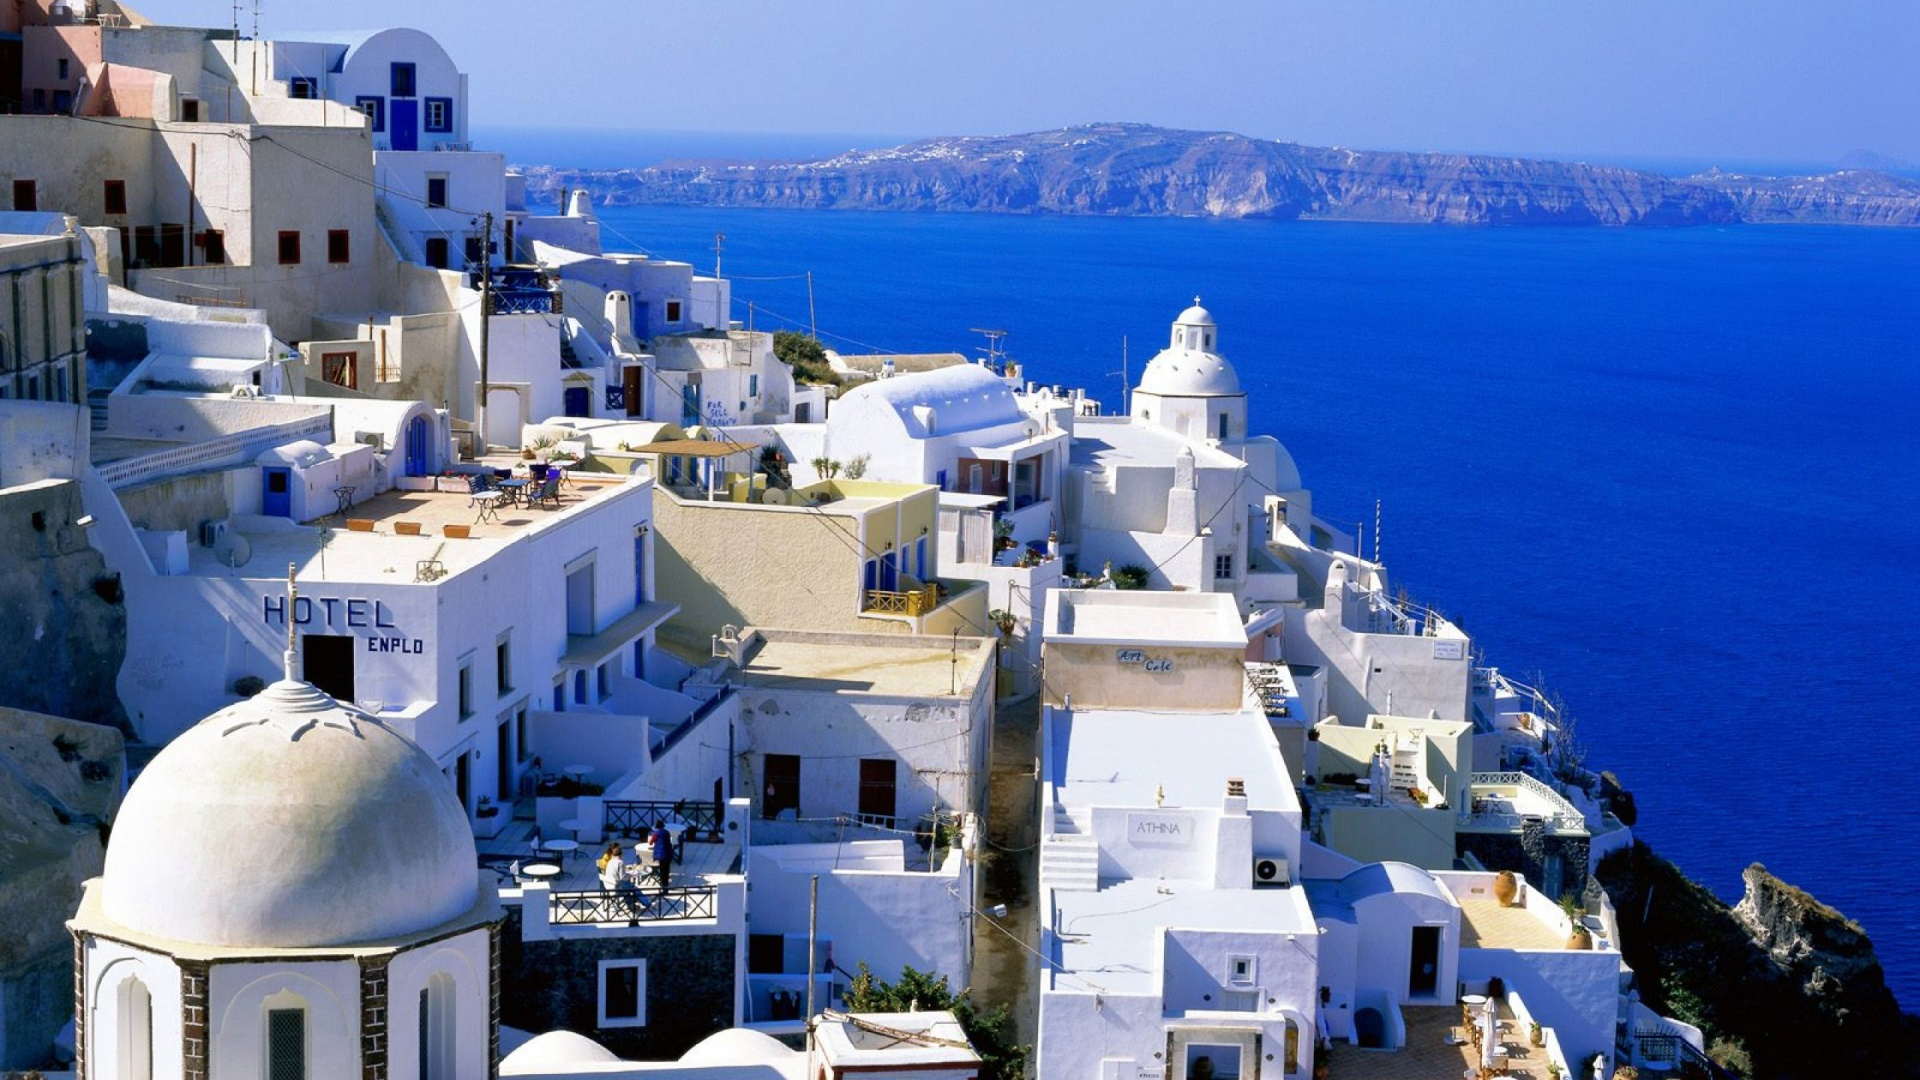 Santorini Wallpaper 1920x1080 HD Wallpaper Background Images 1920x1080